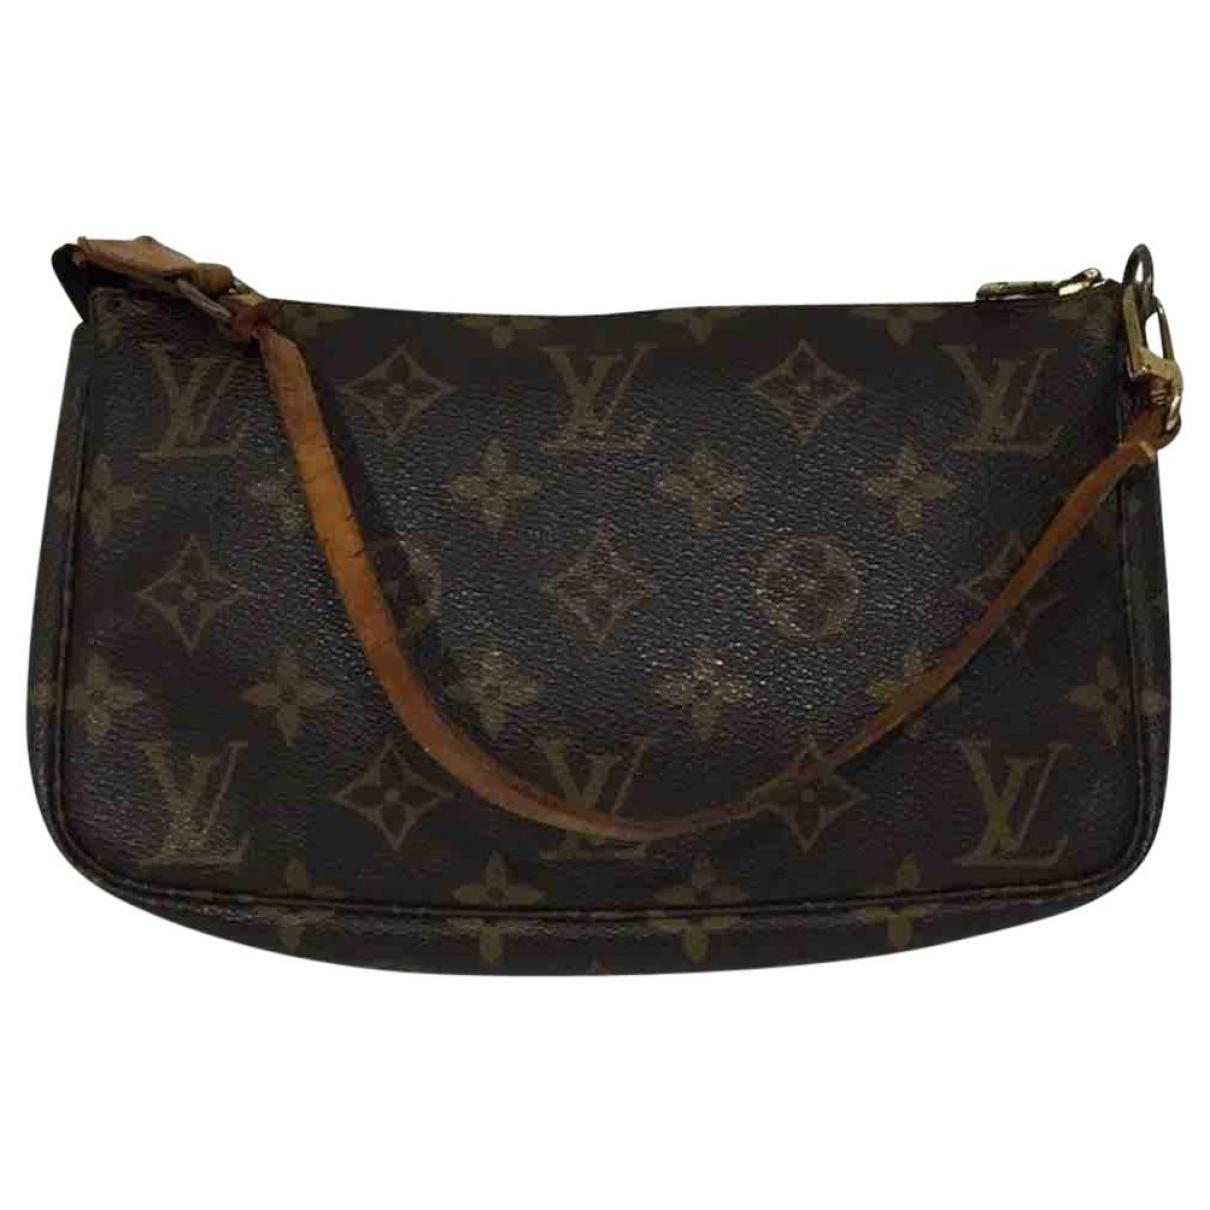 dd5696ec721 Louis Vuitton Pre-owned Pochette Accessoire Cloth Clutch Bag in ...